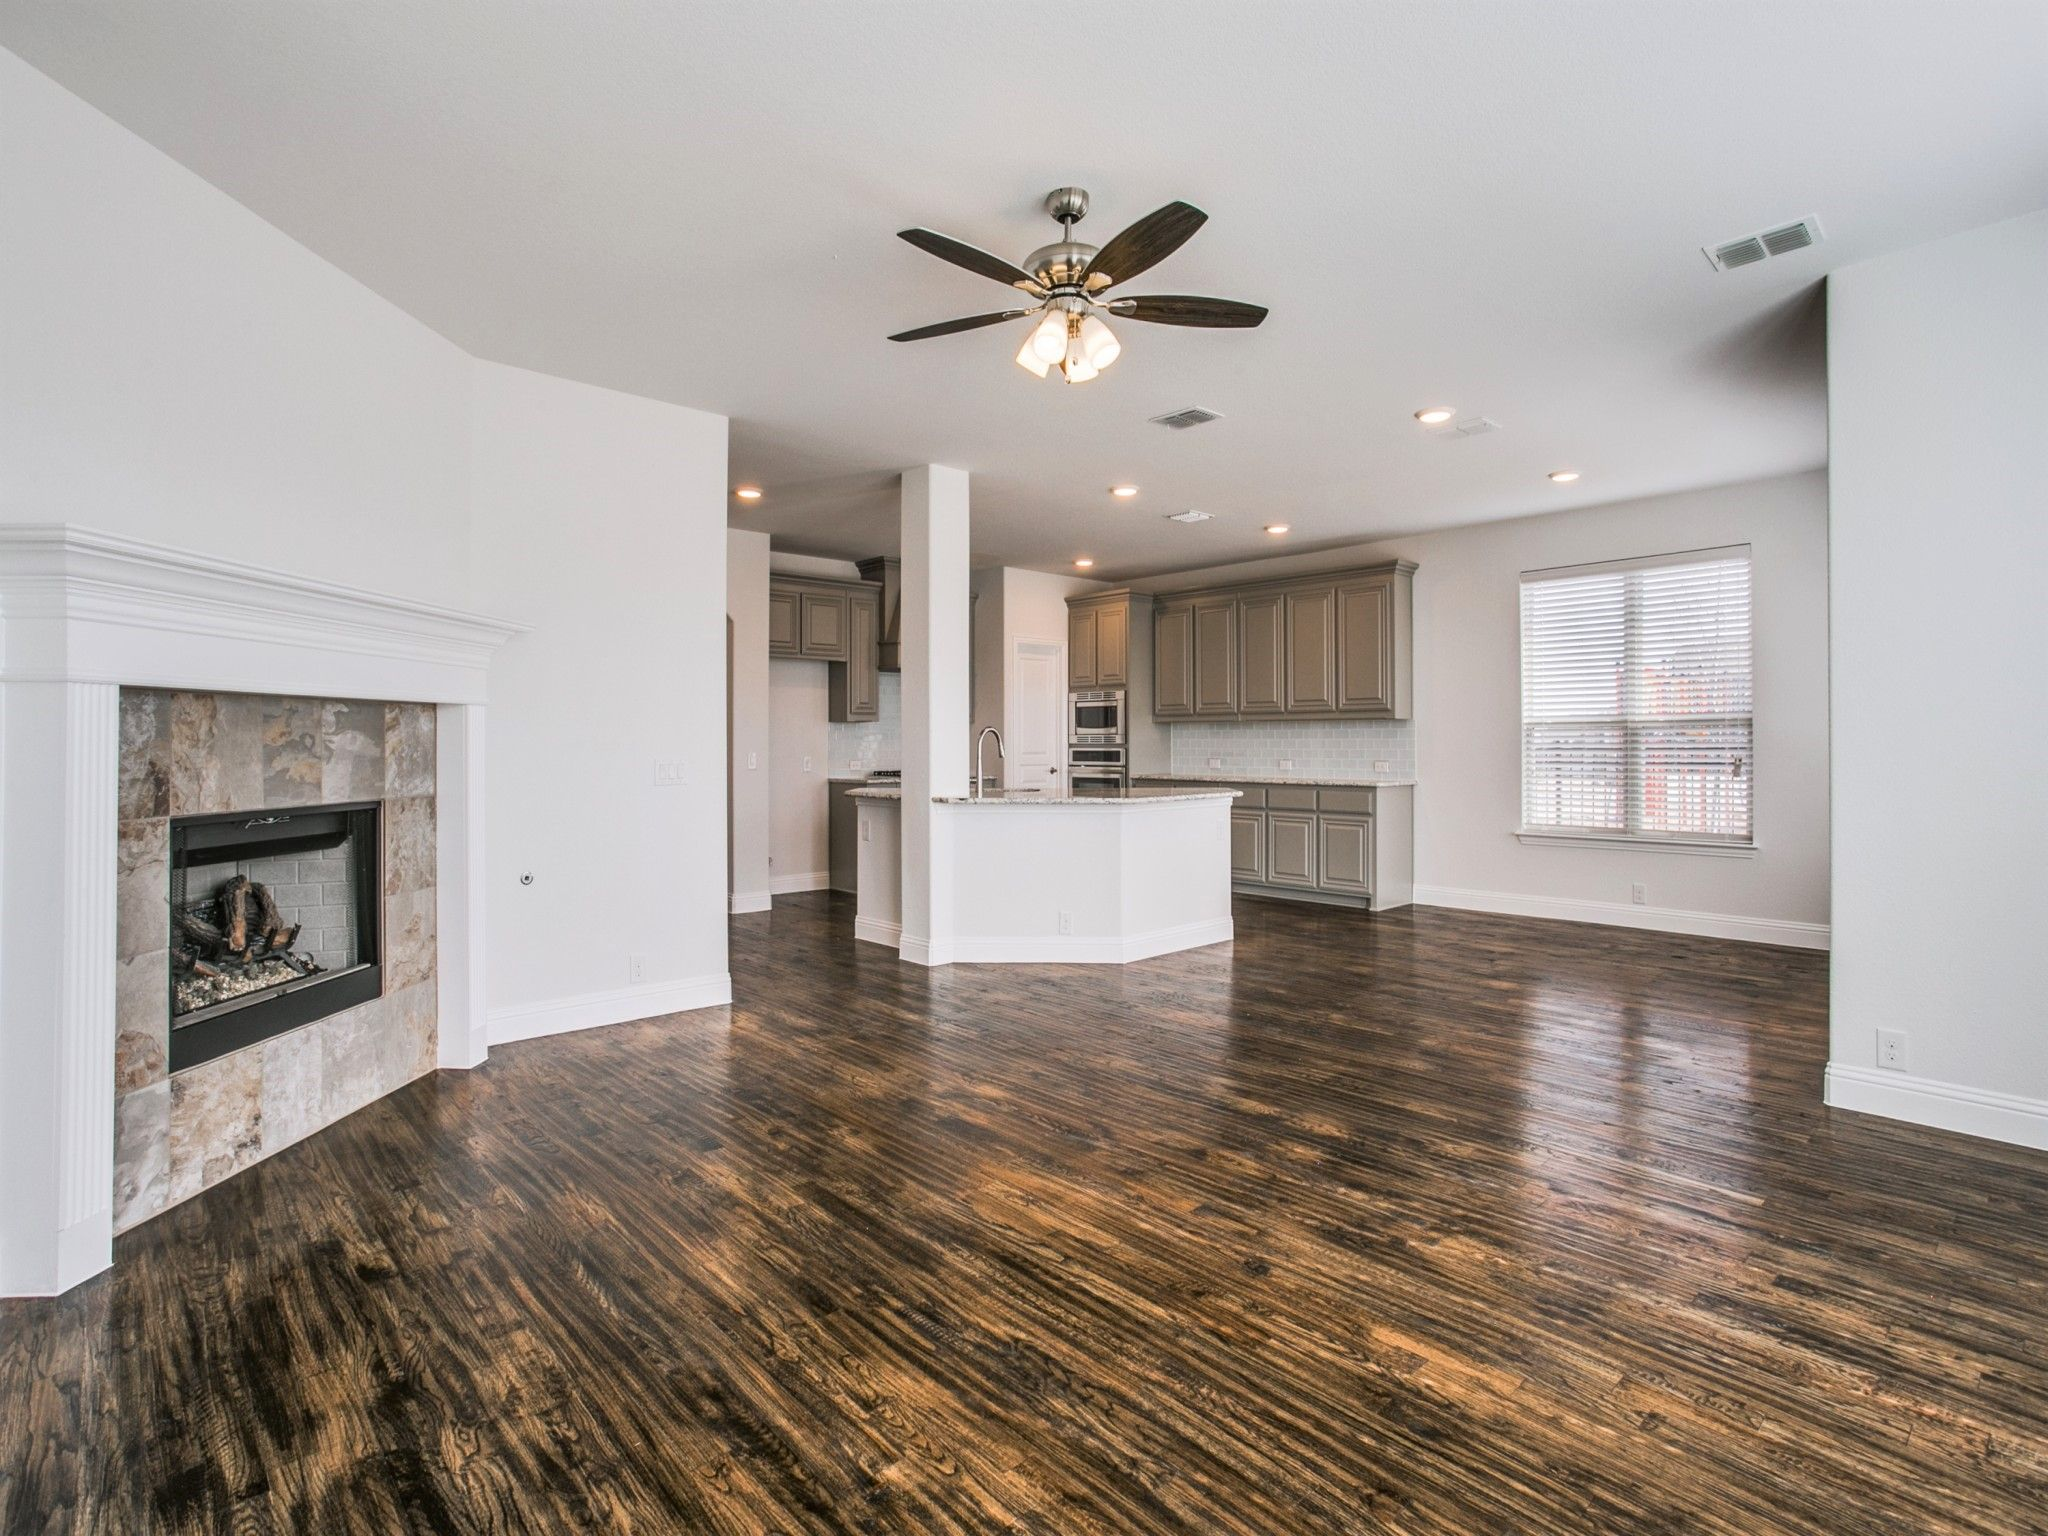 These Floors Will Mesmerize You With Their Beauty Want To See More Visit Our Website To See Our Floor Pla New Homes For Sale Bloomfield Homes Home Builders